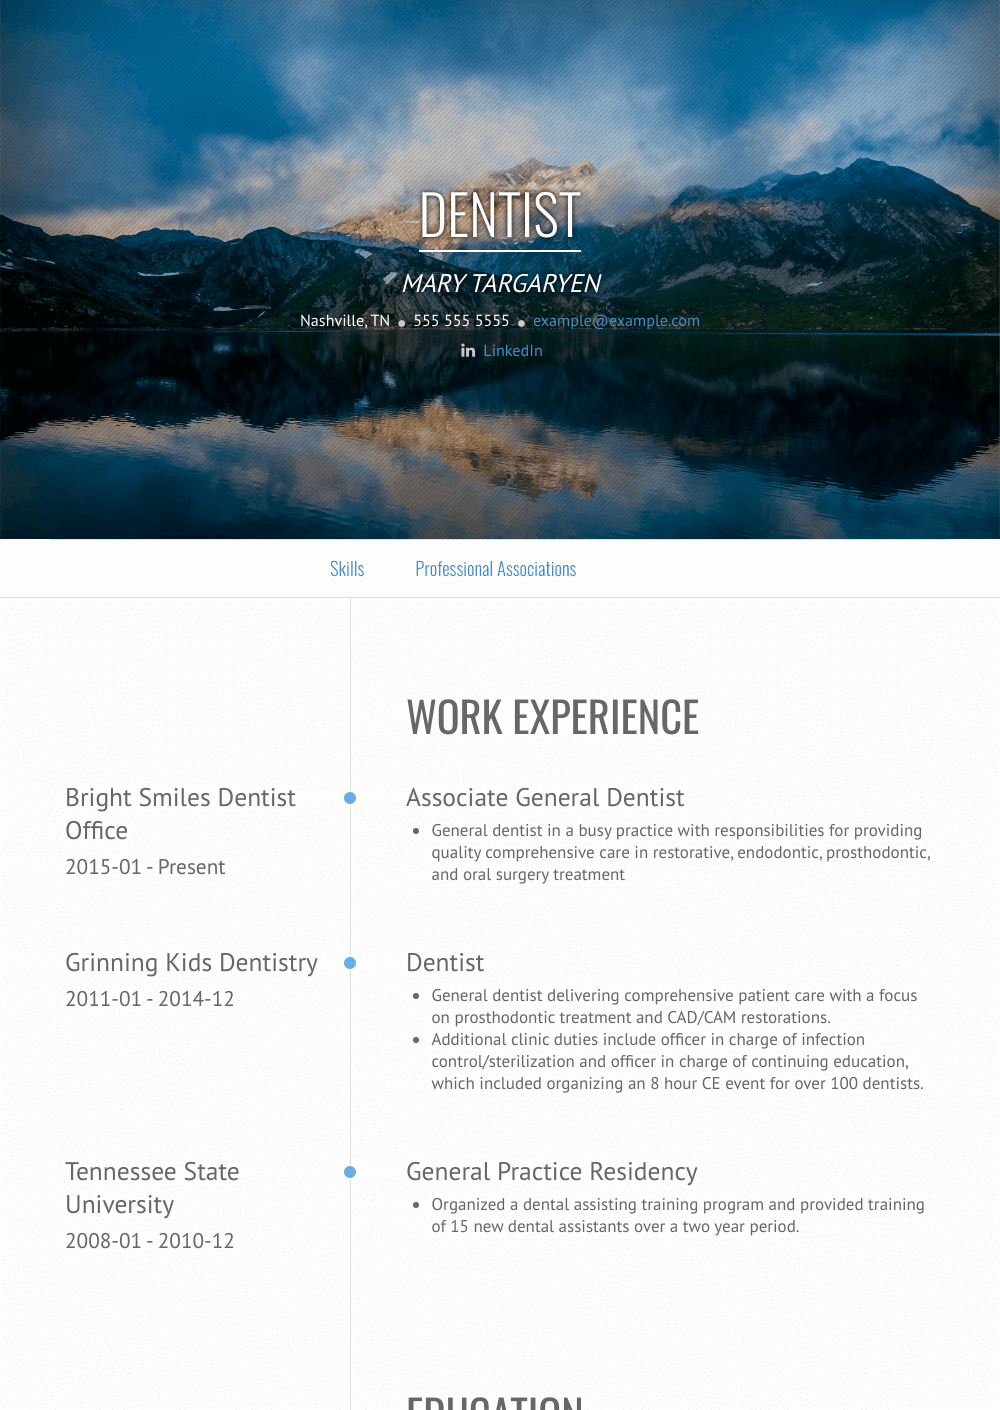 Dentist Resume Sample and Template